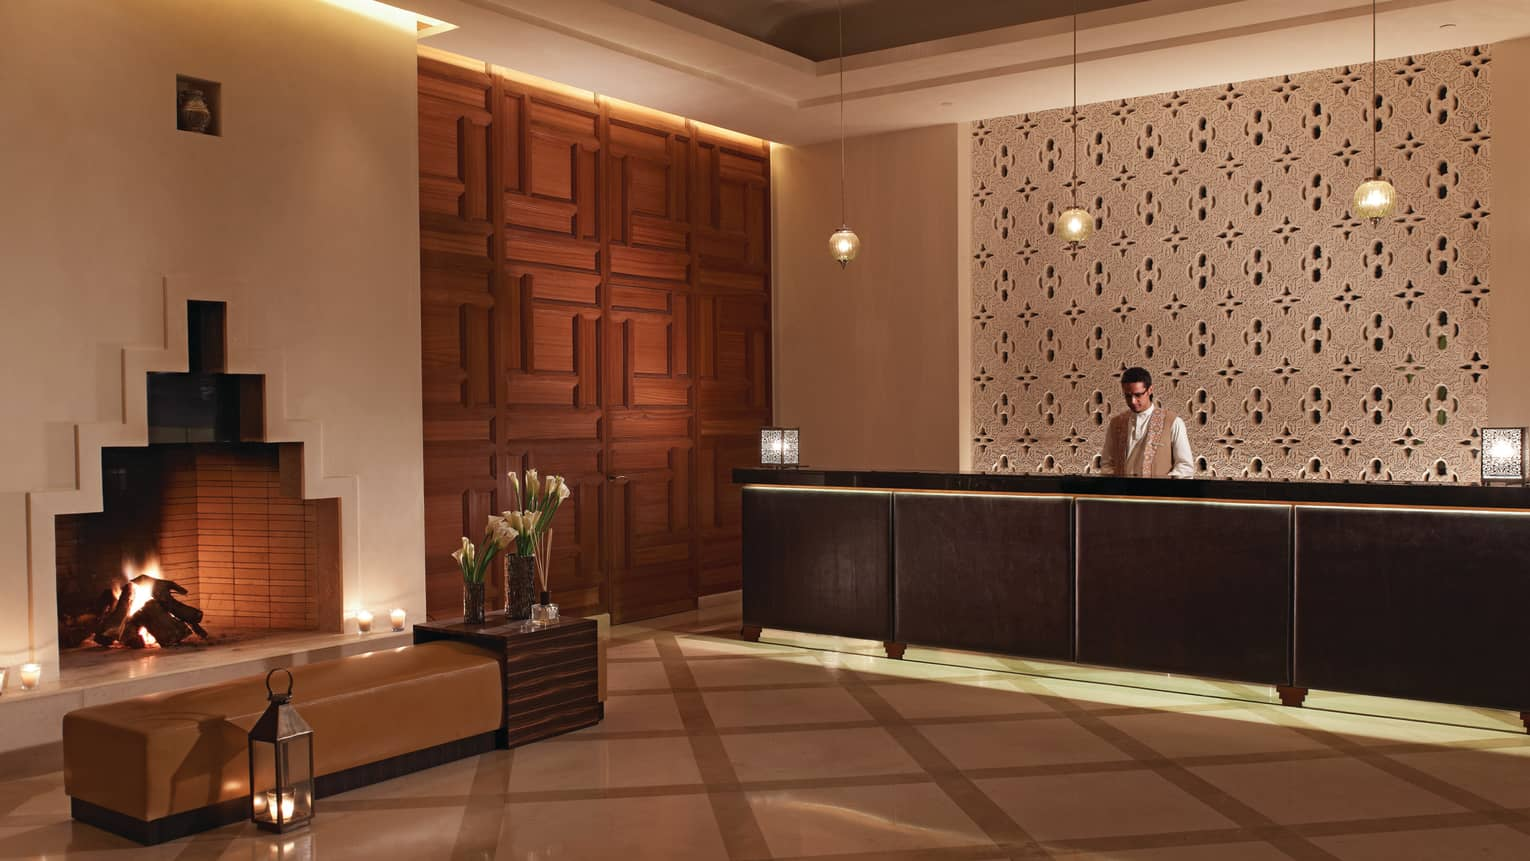 Four Seasons Resort Marrakech modern white hotel lobby with fireplace, bench, lanterns by reception desk